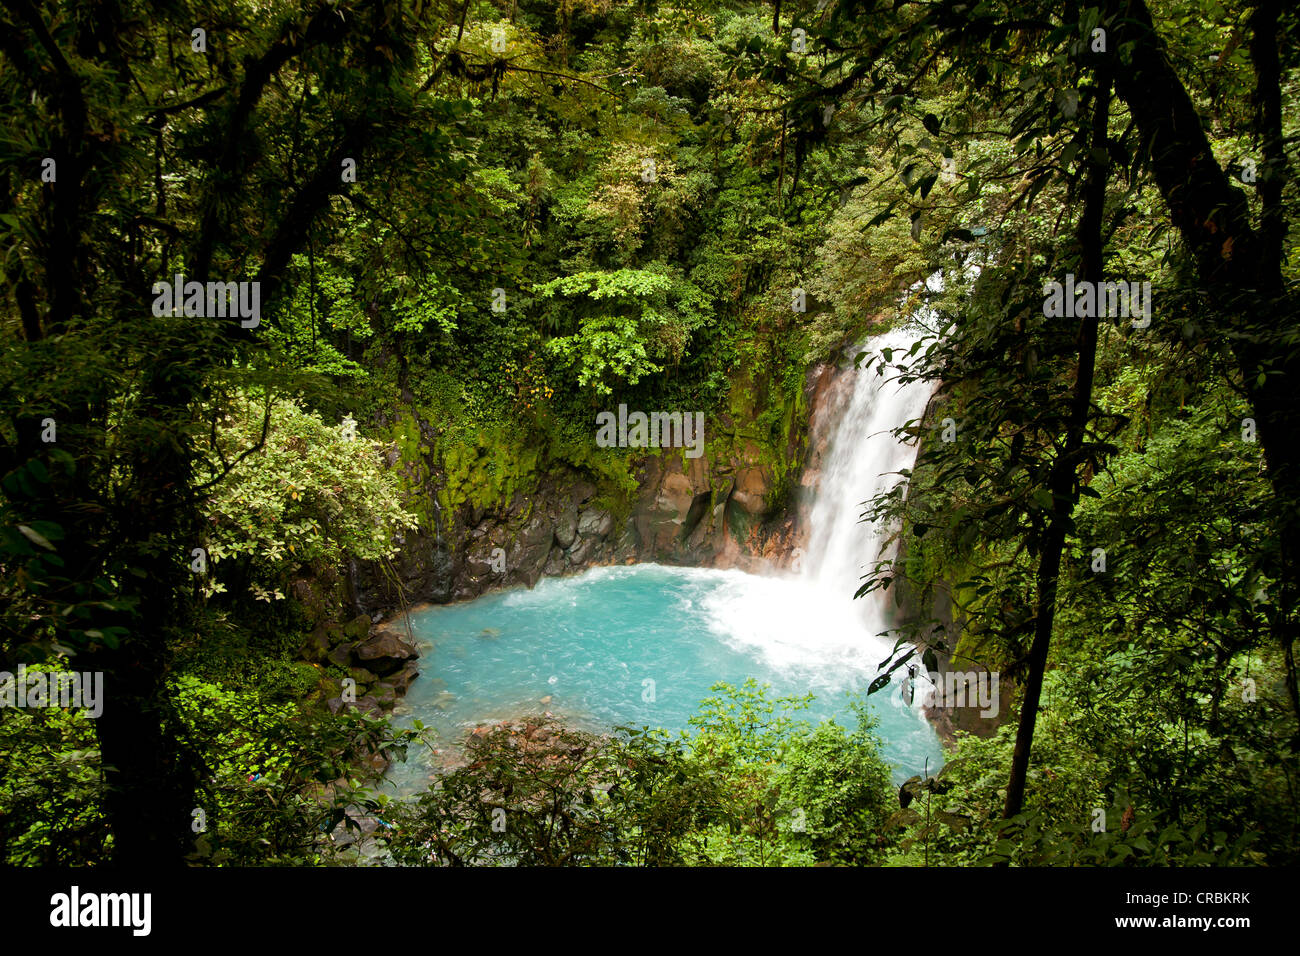 Waterfall with the blue waters of the Rio Celeste in Volcán Tenorio National Park, Costa Rica, Central America Stock Photo